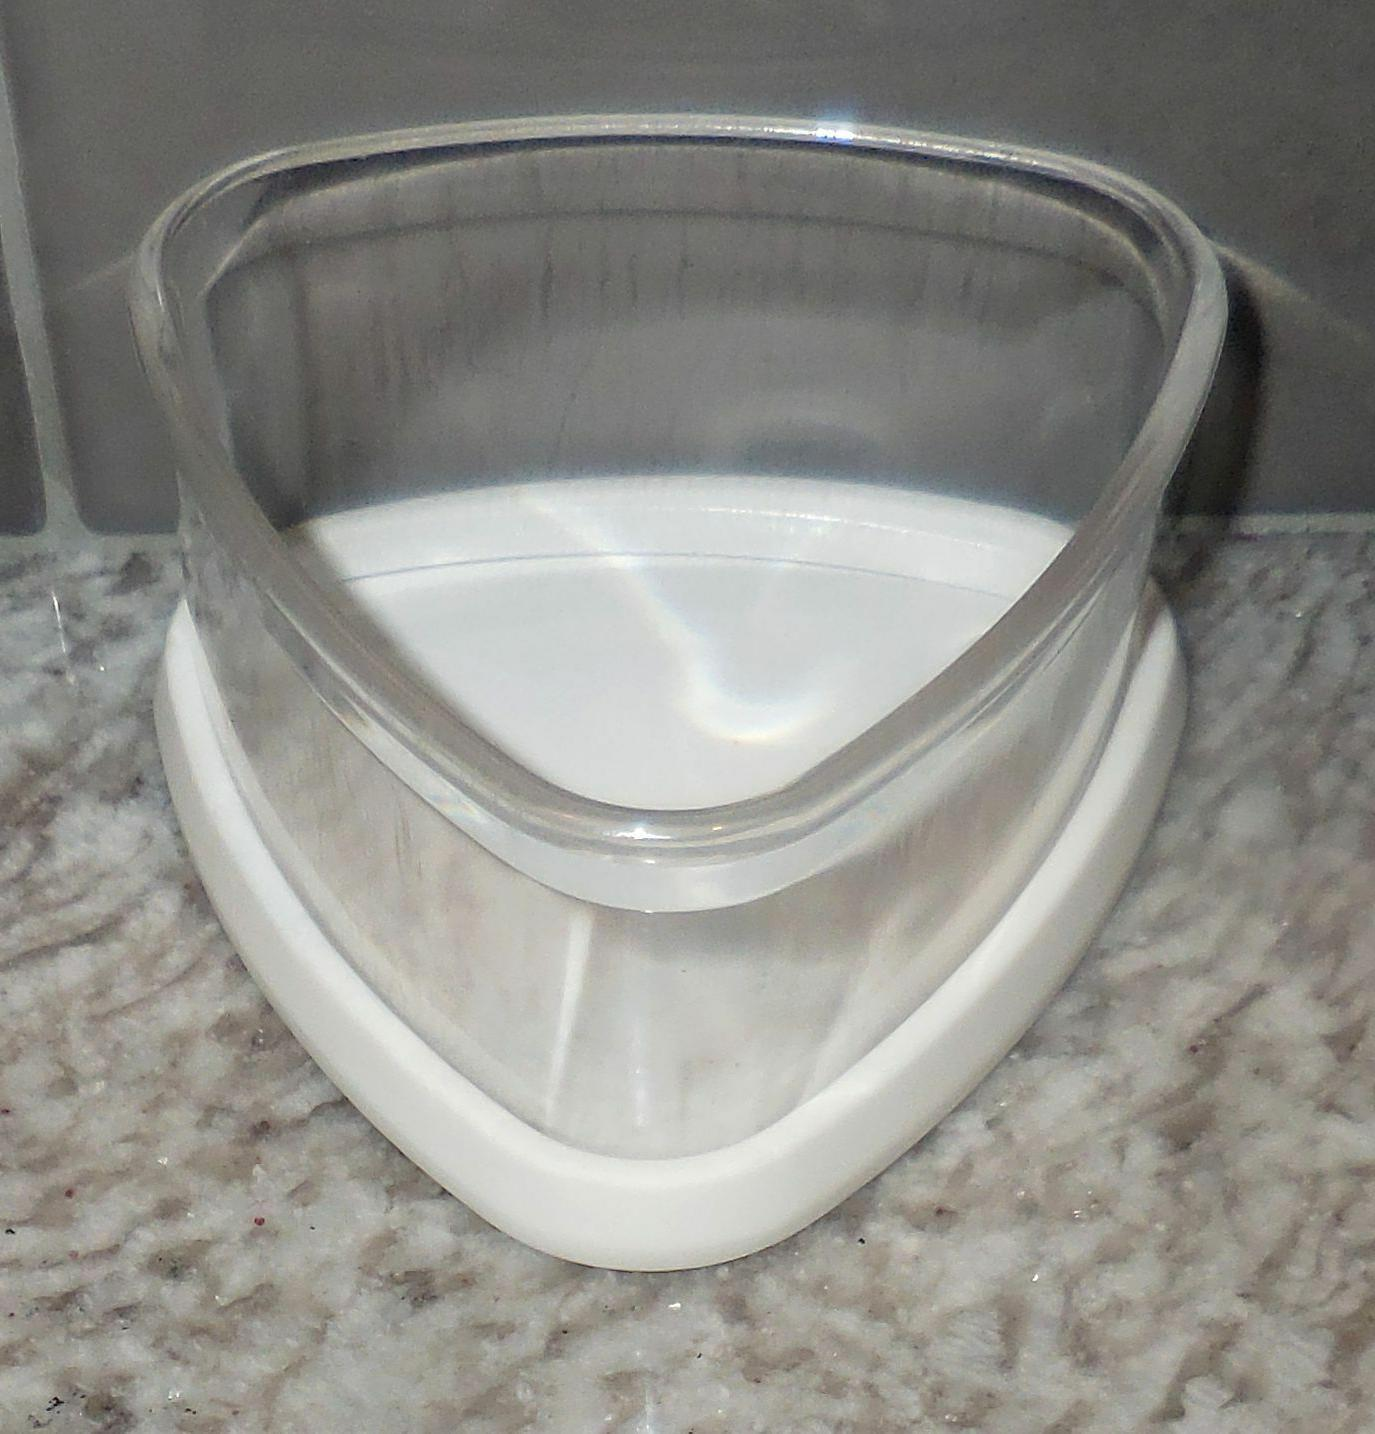 Cuisipro Cream Maker + Instructions/